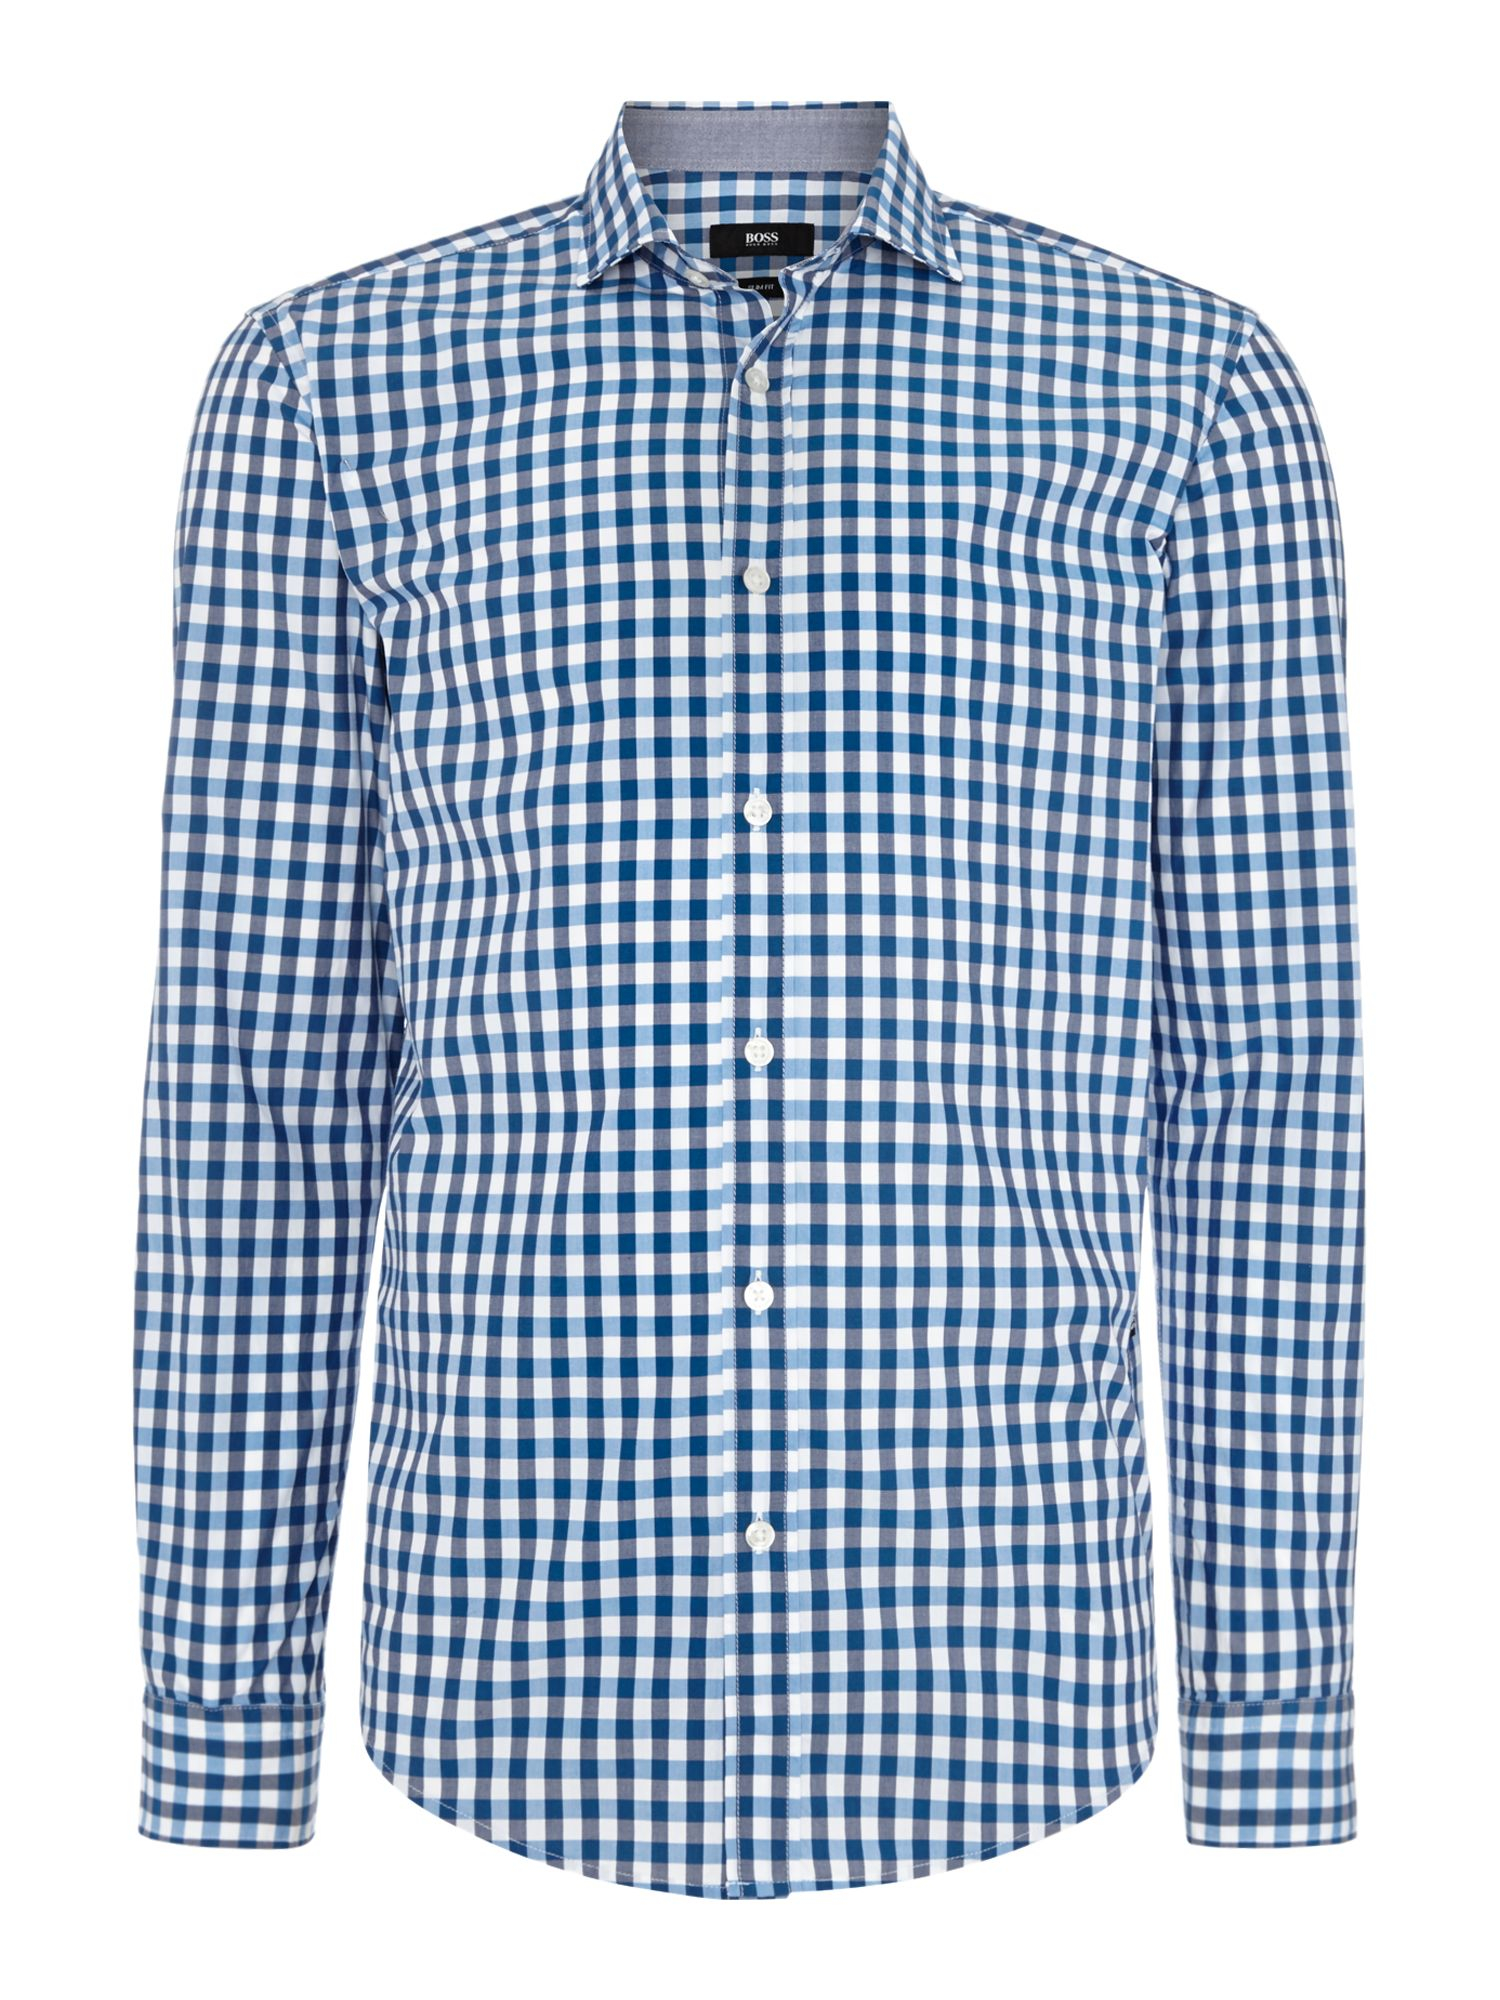 Boss ridley slim fit gingham shirt in blue for men navy for Navy blue gingham shirt